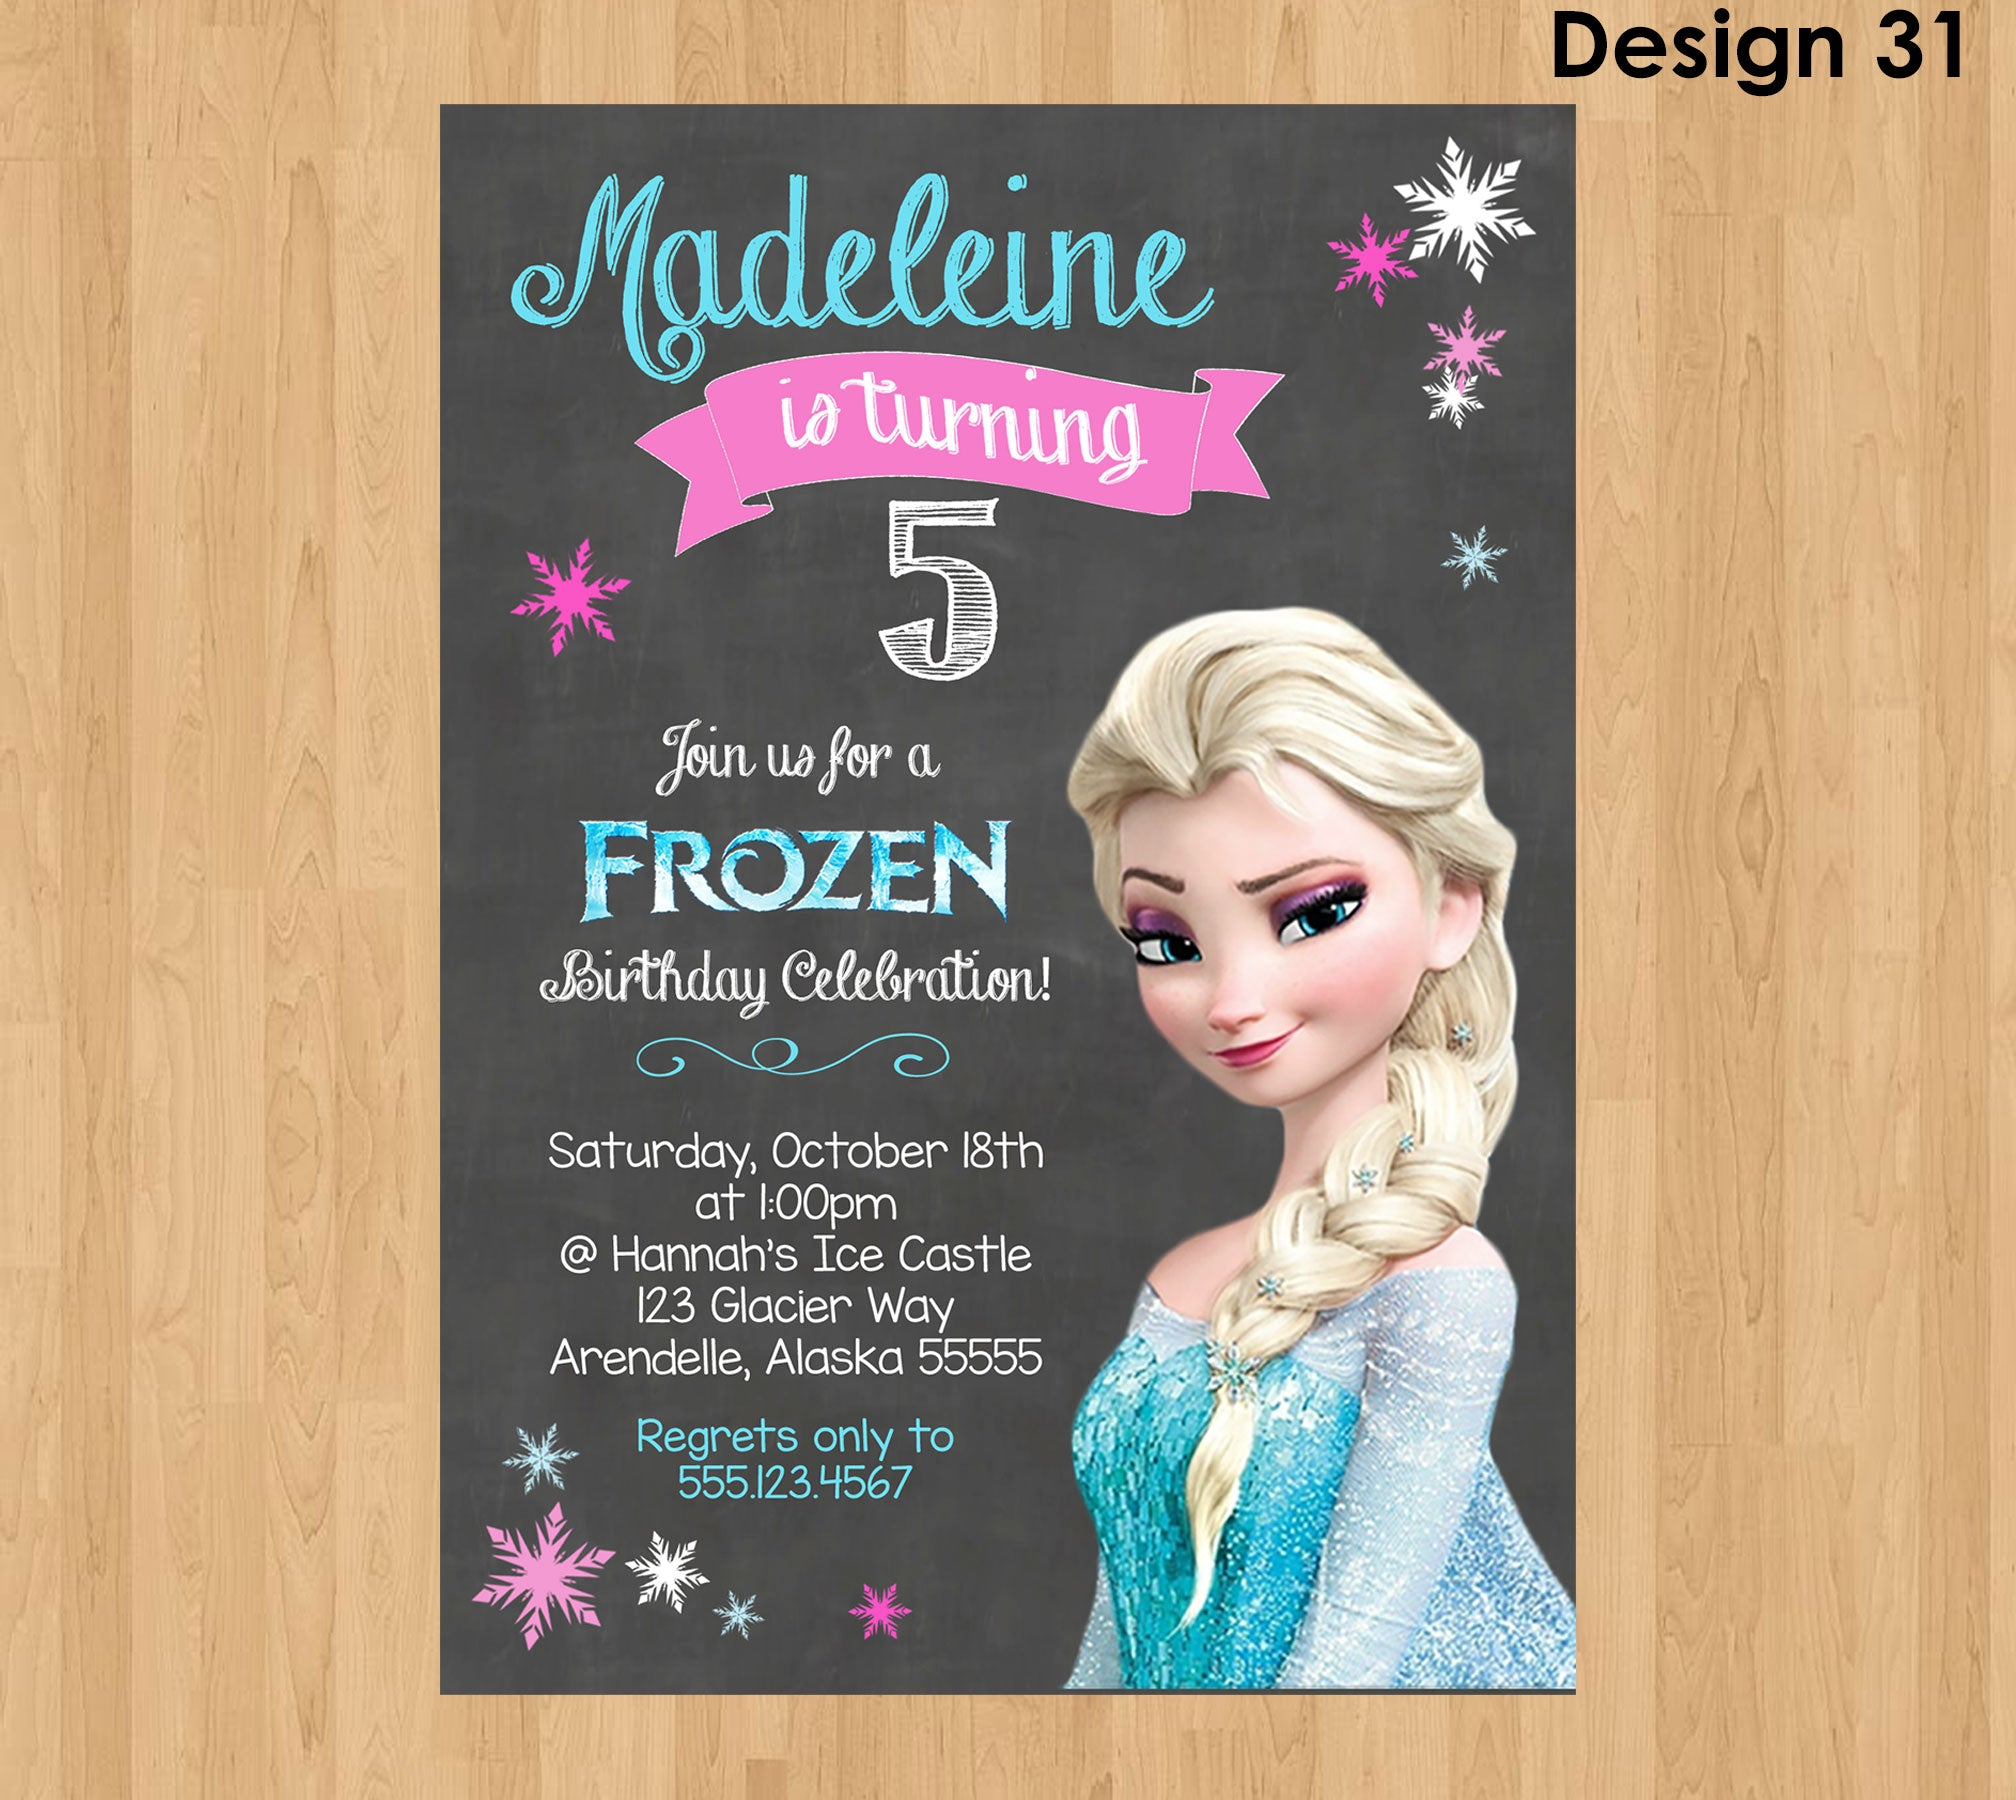 image regarding Frozen Birthday Card Printable referred to as ELSA INVITATION, Frozen Chalkboard Invitation, Frozen Invitation, Frozen Social gathering Invitation, Frozen Birthday Invite, Elsa Birthday Invitation